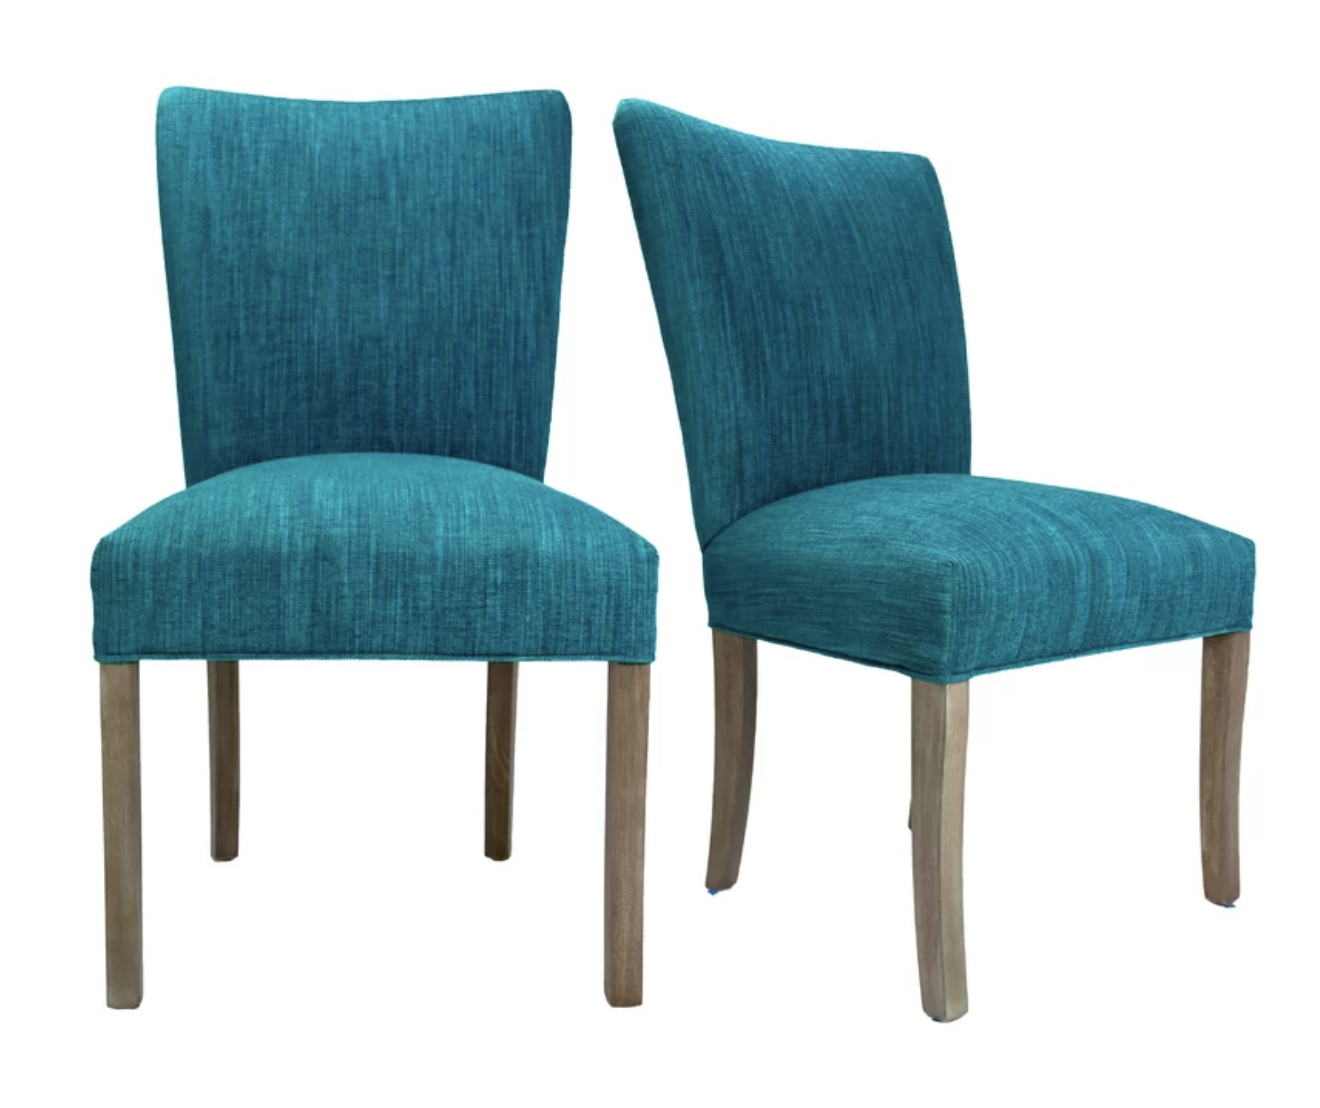 sole-designs-julia-lucky-spring-seating-double-dow-upholstered-side-chair